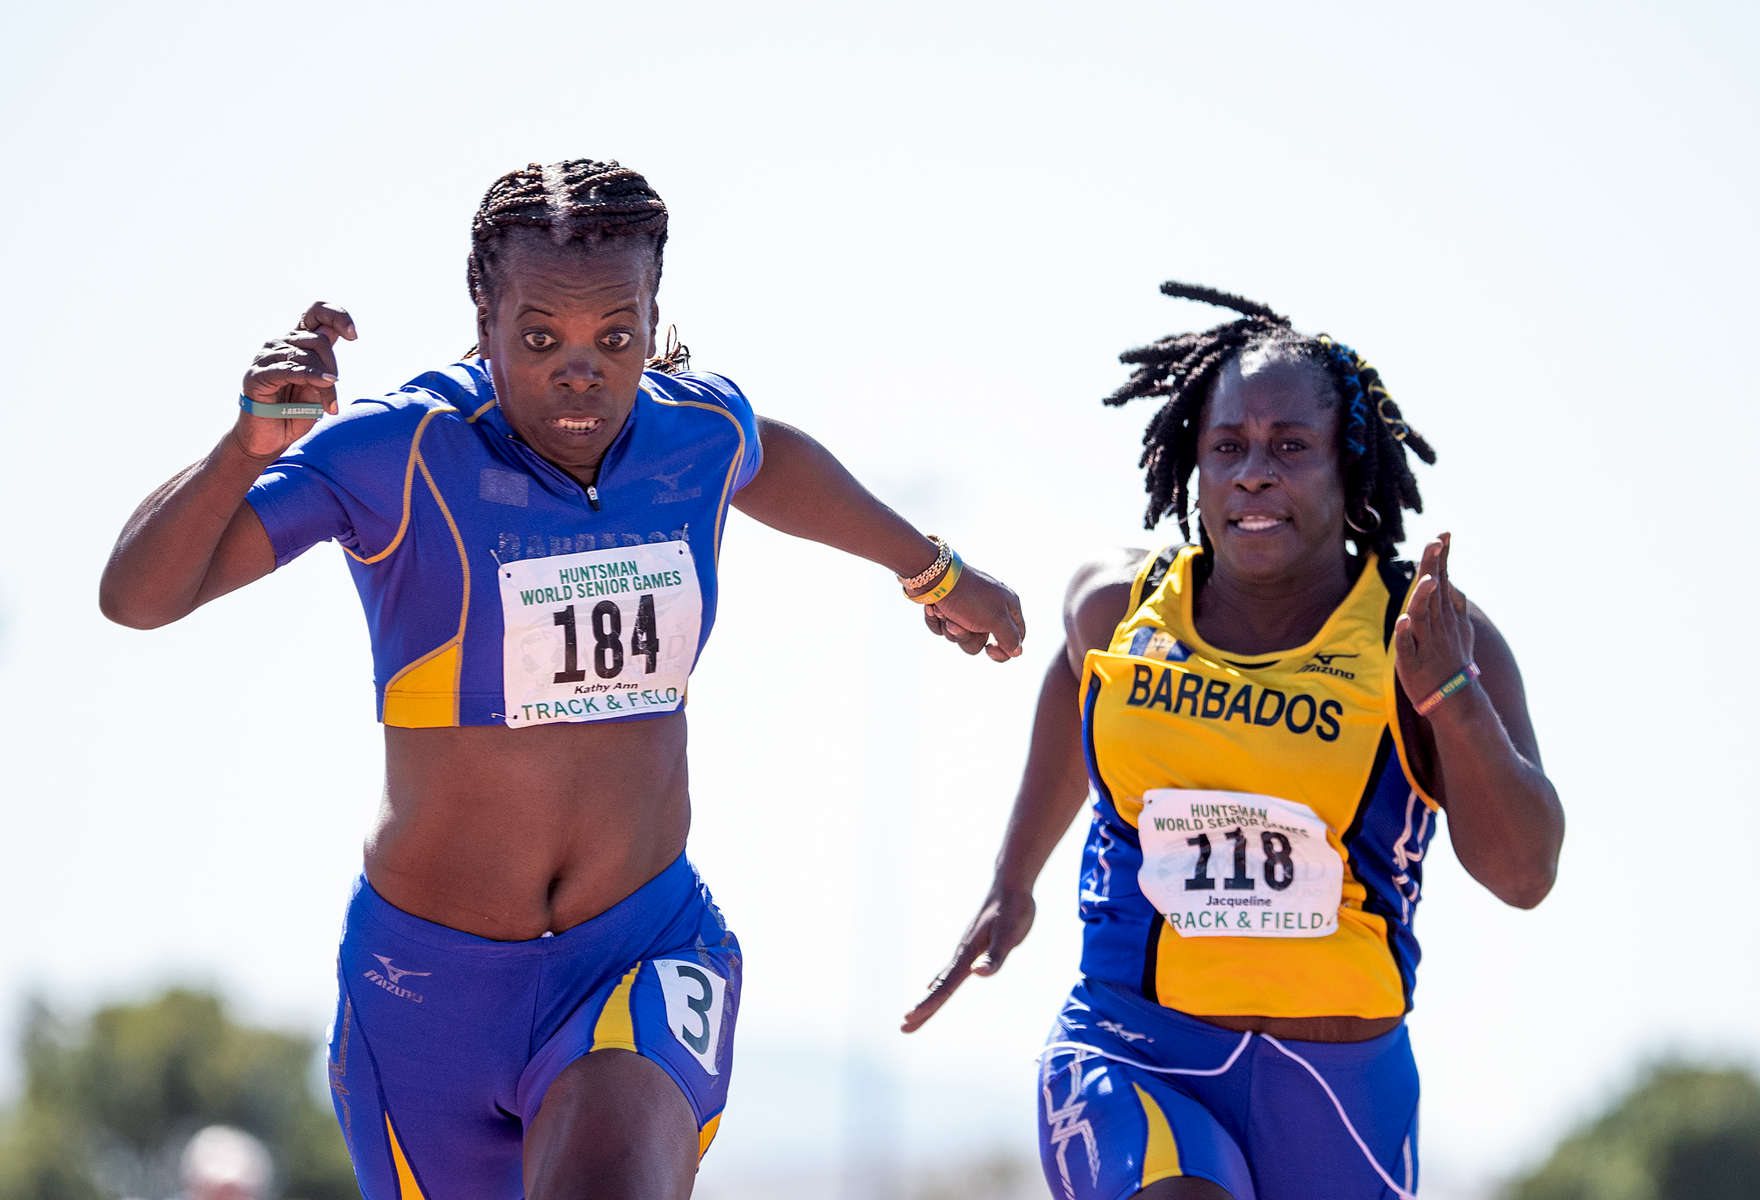 Senior athletes Kathy Anne Marshall (L) aged fifty two and Jacqueline Brathwaite aged fifty compete in the 50m dash during the Huntsman World Senior Games on October 15, 2019 in St. George, Utah.